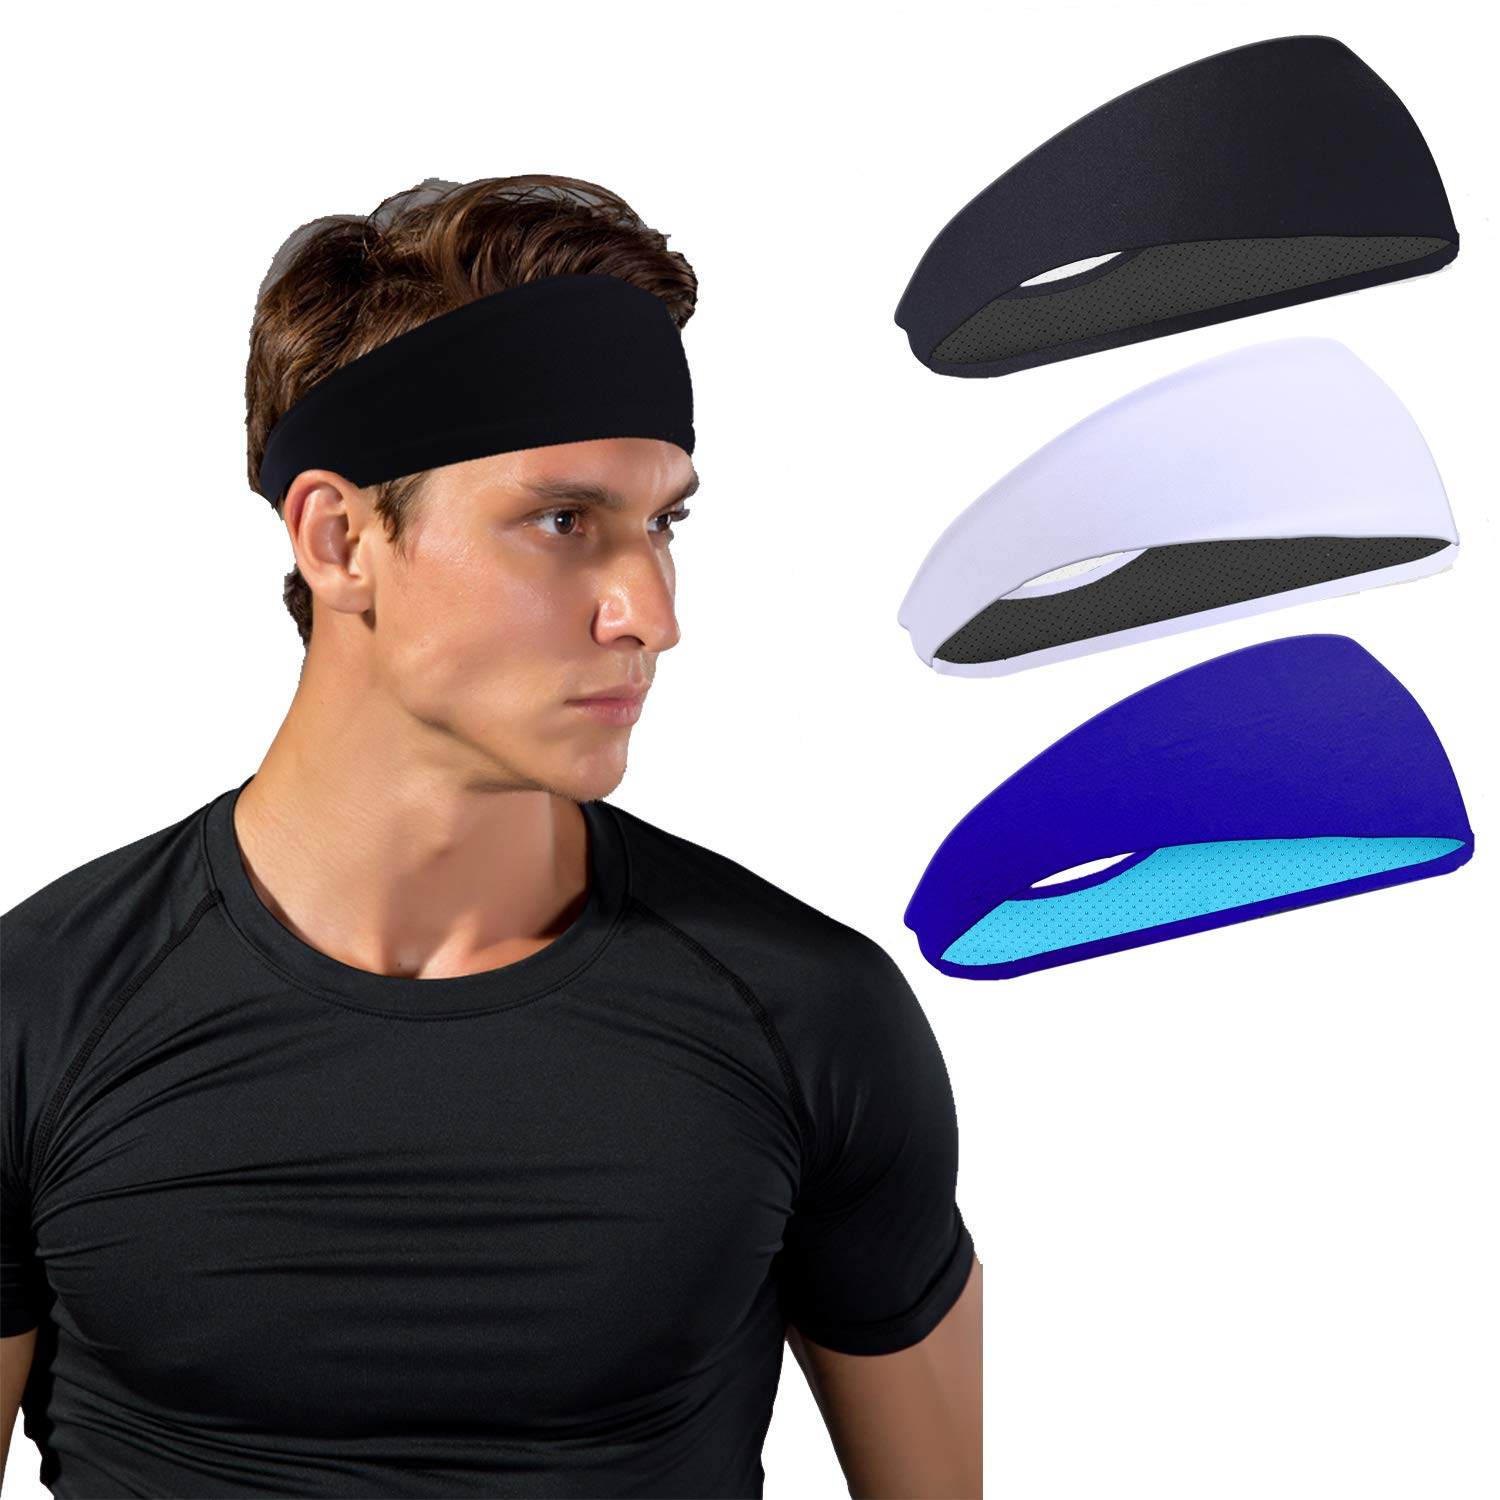 JOEYOUNG Sport Headbands for Men and Women - Mens Headband, Workout Sweatband Headband for Running, Yoga, Fitness, Gym - Performance Stretch/Lightweight (A-3pcs-black+White+ Dark Blue)